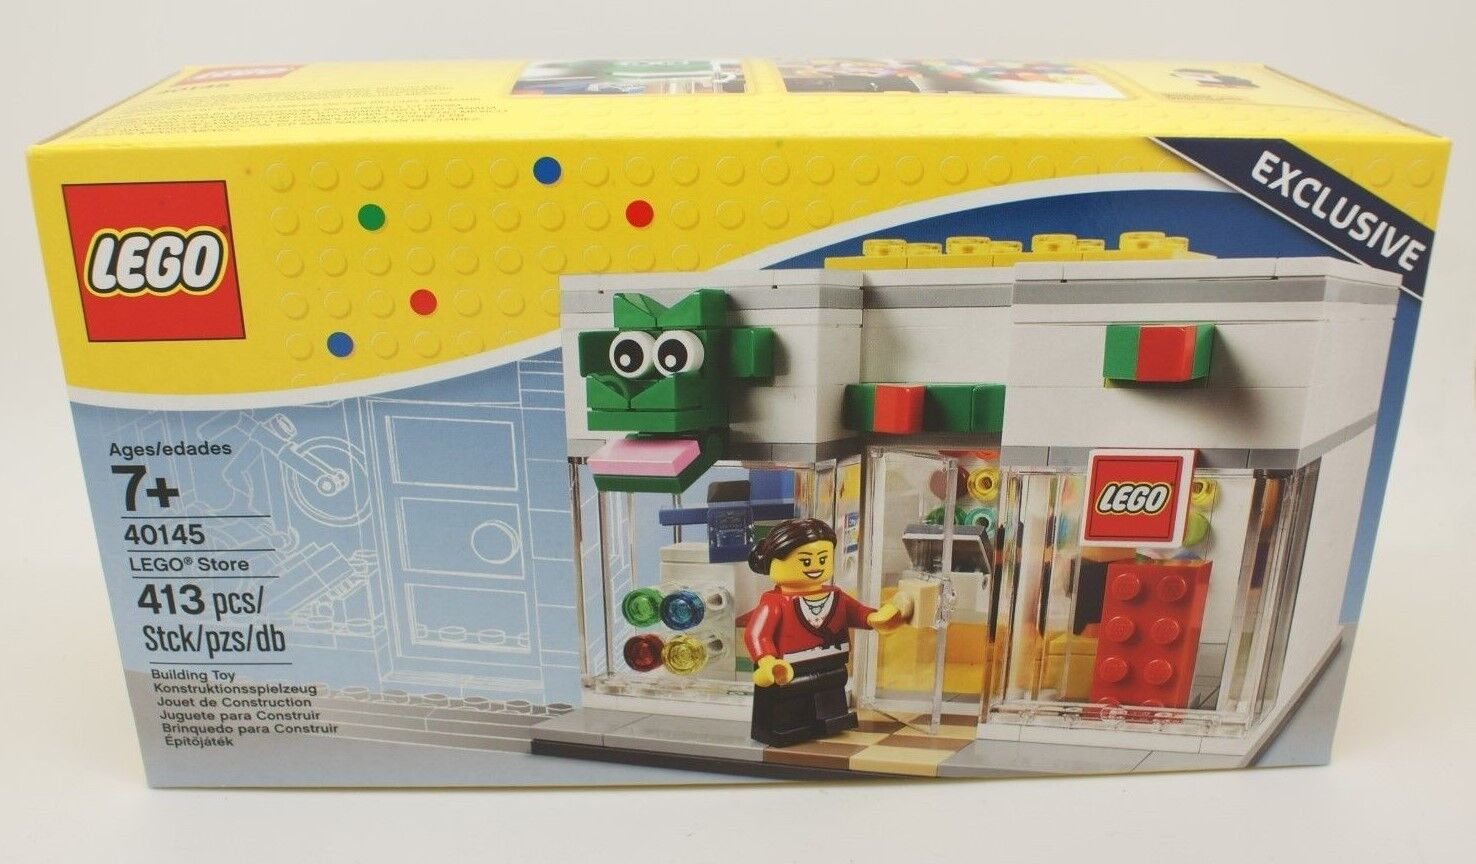 Lego Store Grand Opening Exclusive Building Toy Set Limited 40145 413 pc NISB